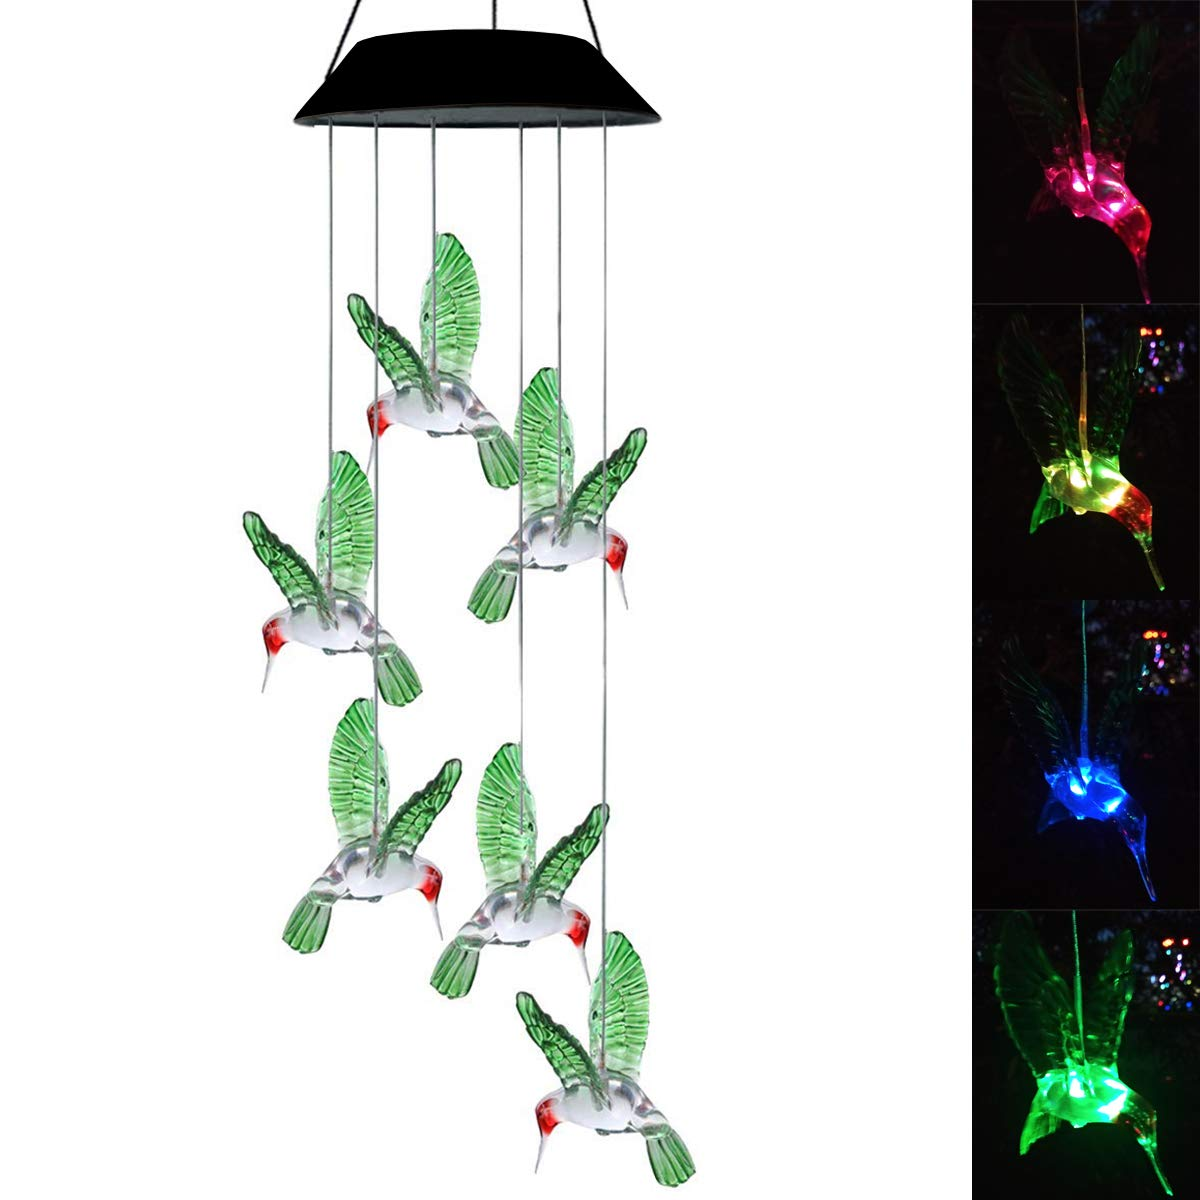 Topspeeder LED Solar Hummingbird Wind Chime, Changing Color Waterproof Six Hummingbird Wind Chimes For Home Party Night Garden Decoration (Hummingbird)